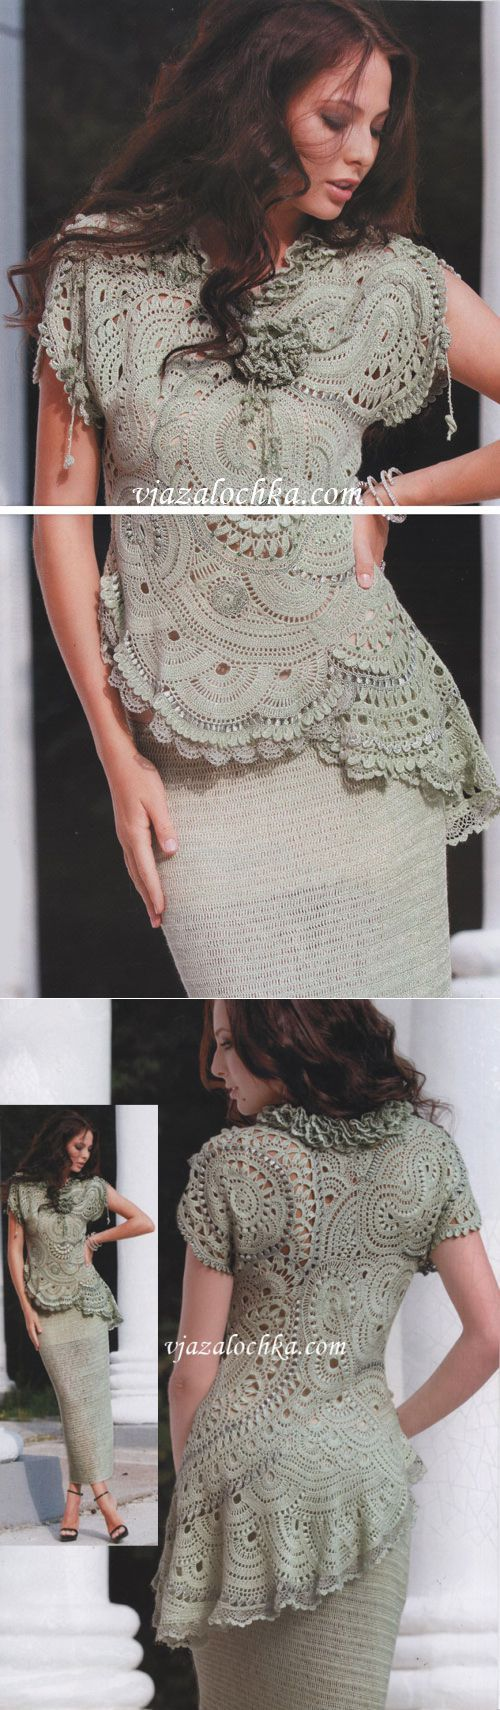 Freeform crochet top and skirt. I would love to make this and be able to wear it!